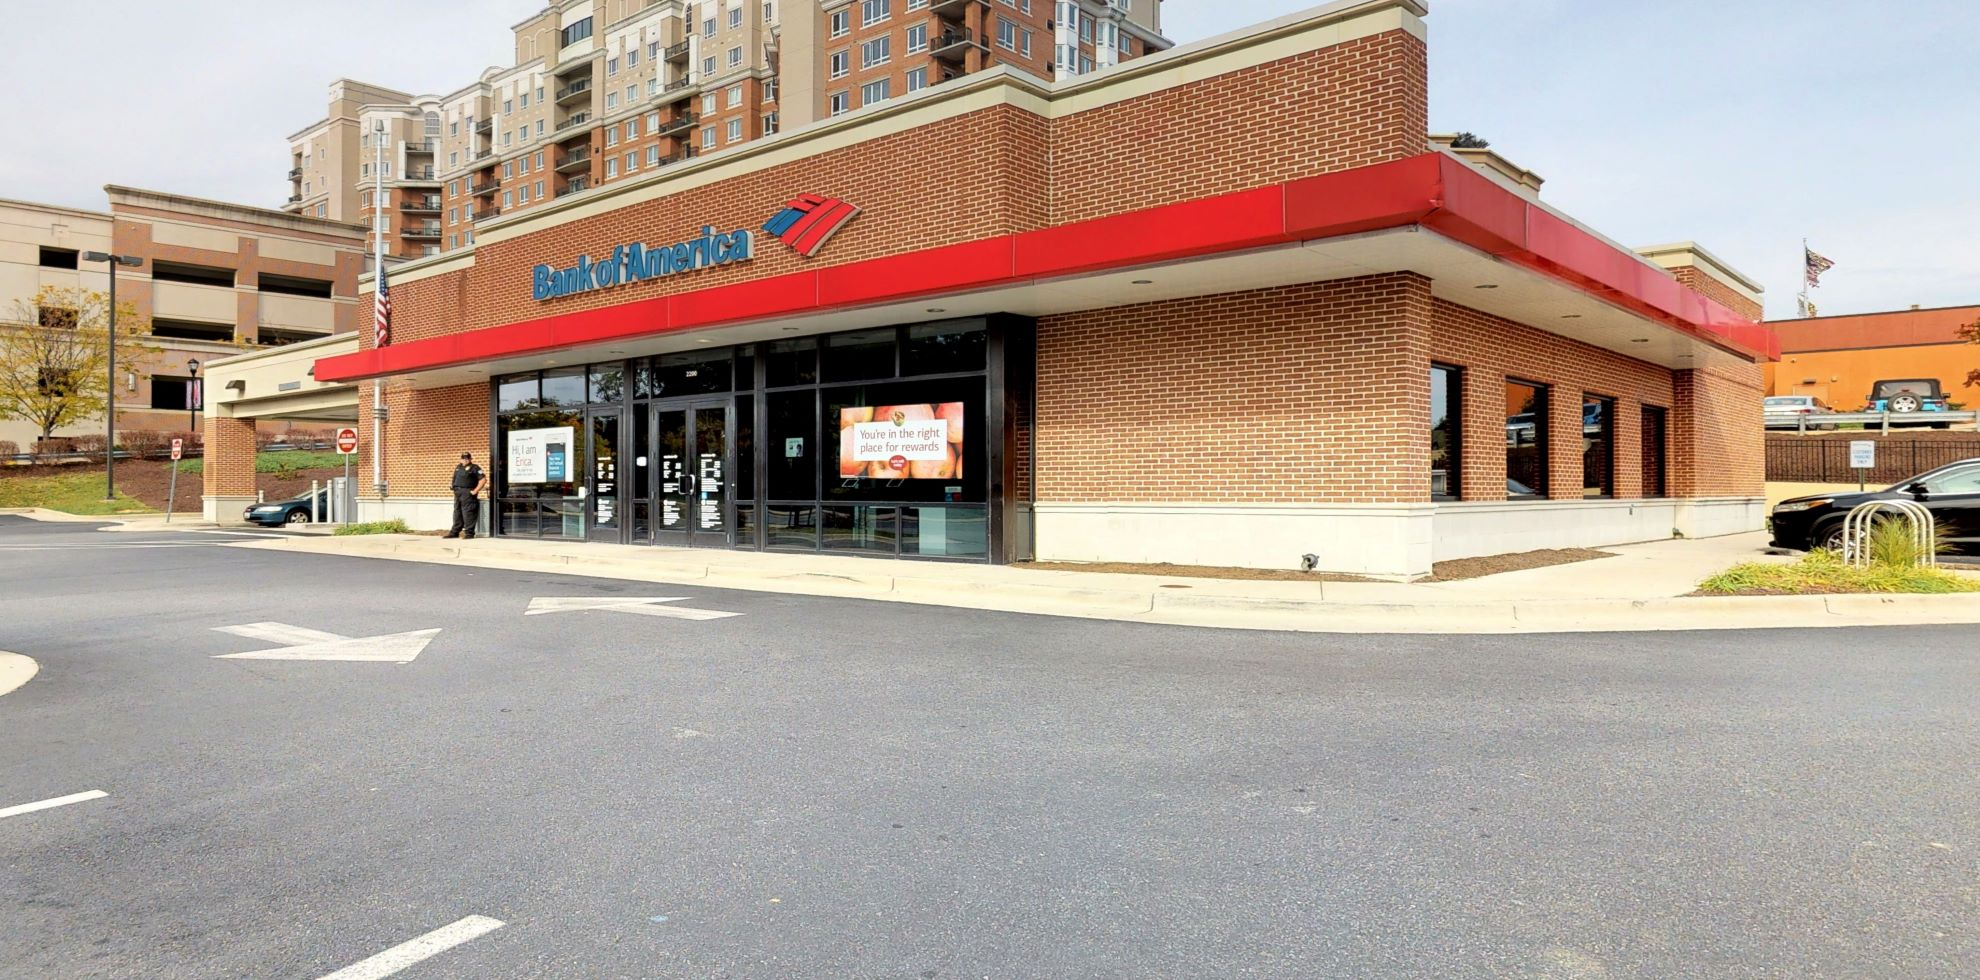 Bank of America financial center with drive-thru ATM and teller | 2200 Forest Dr, Annapolis, MD 21401